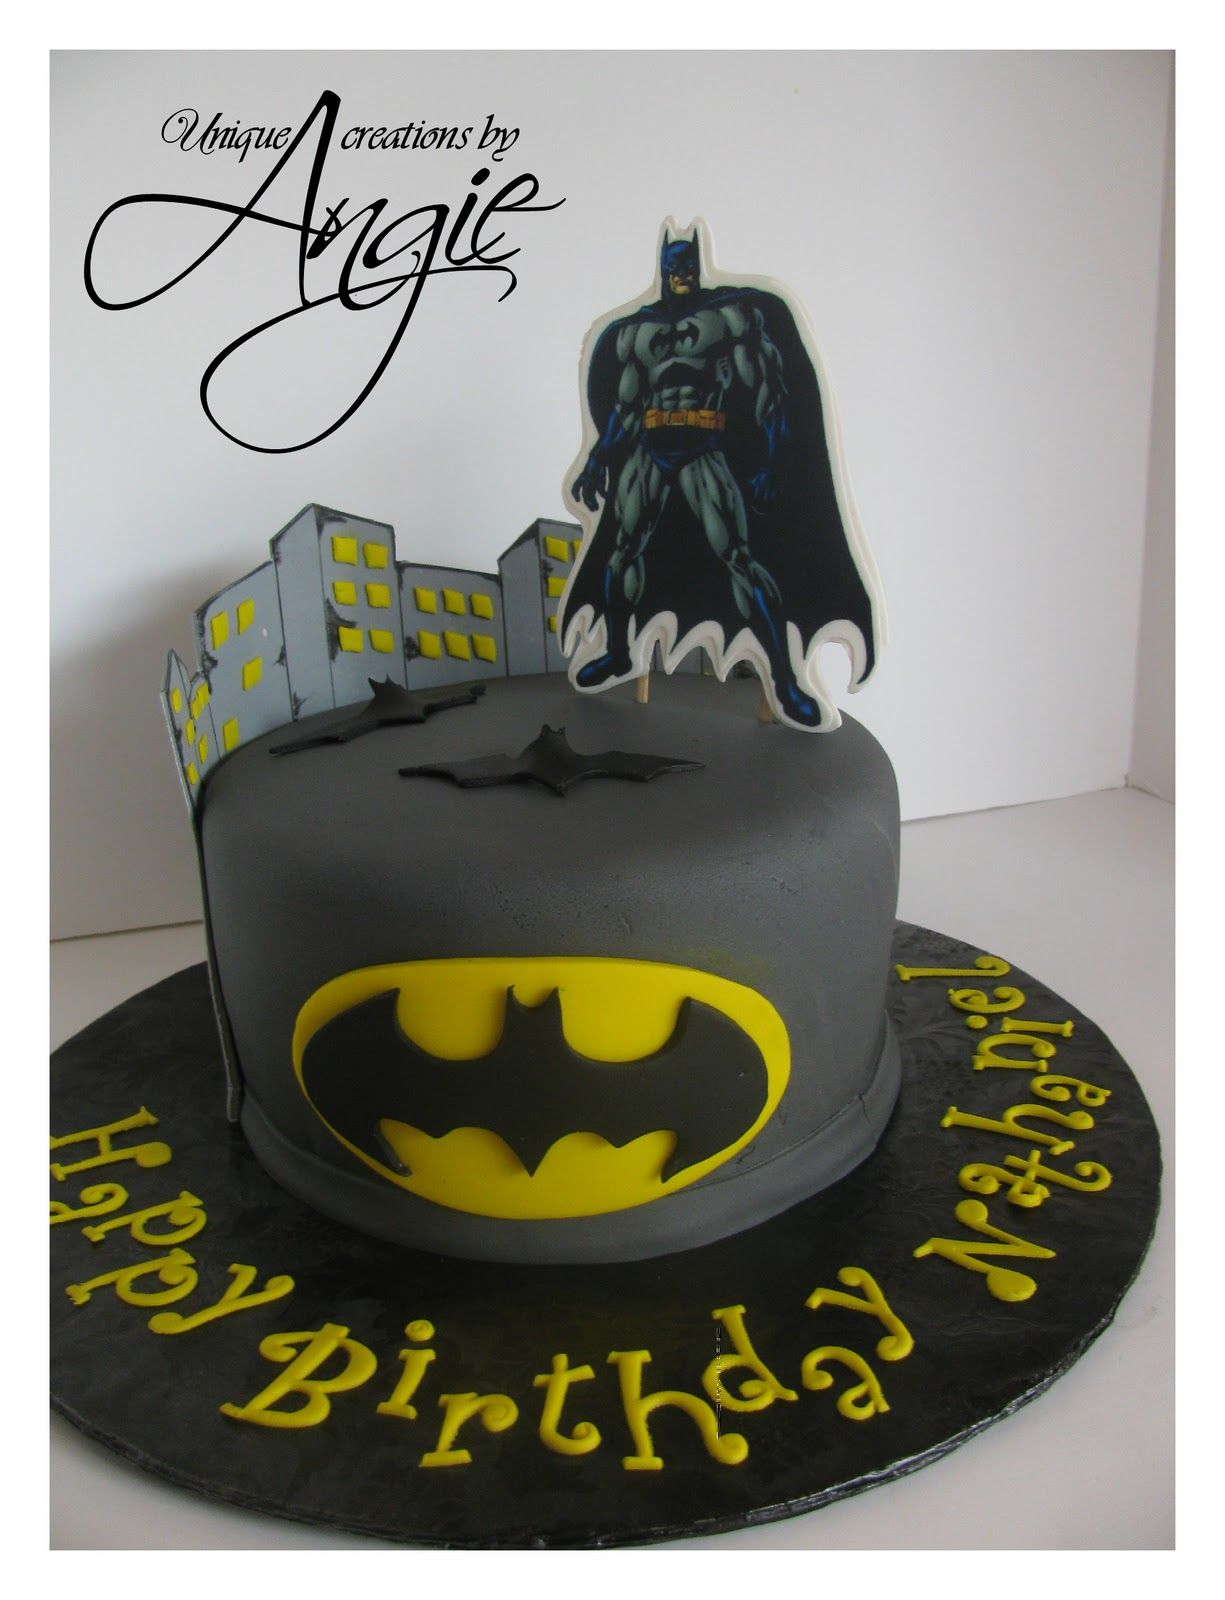 Walmart Cake Designs : walmart, designs, Walmart, Bakery, Birthday, Cakes, Photos, Batman, Pictures, Cakeonly, Delicious…, Cakes,, Bakery,